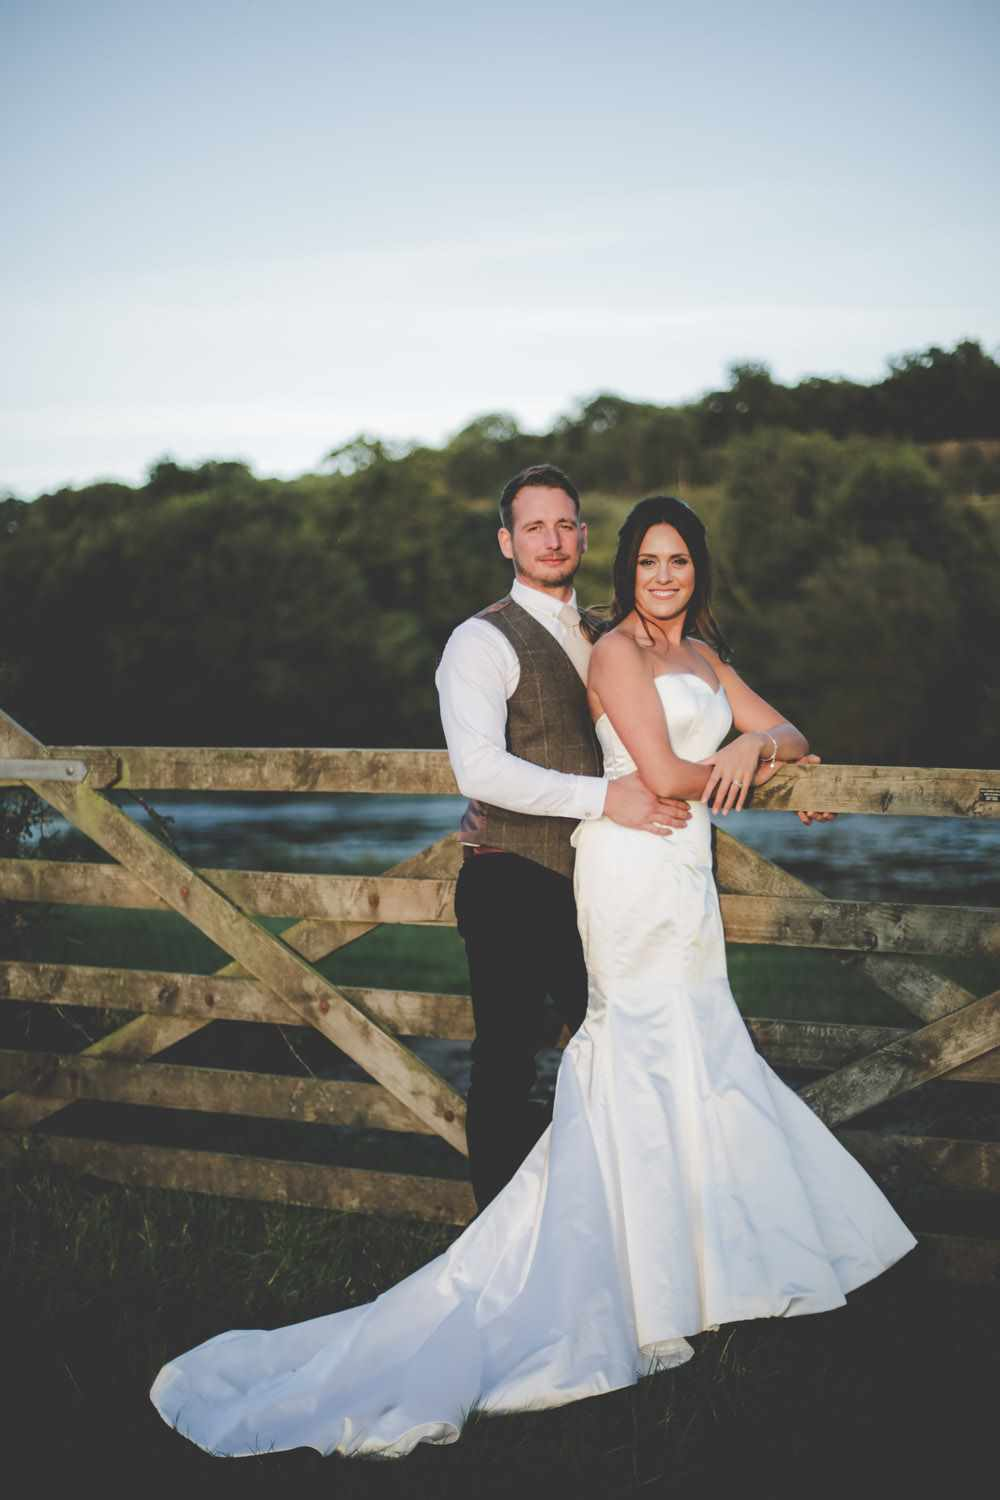 devon-wedding-photos-wedding-photography-65